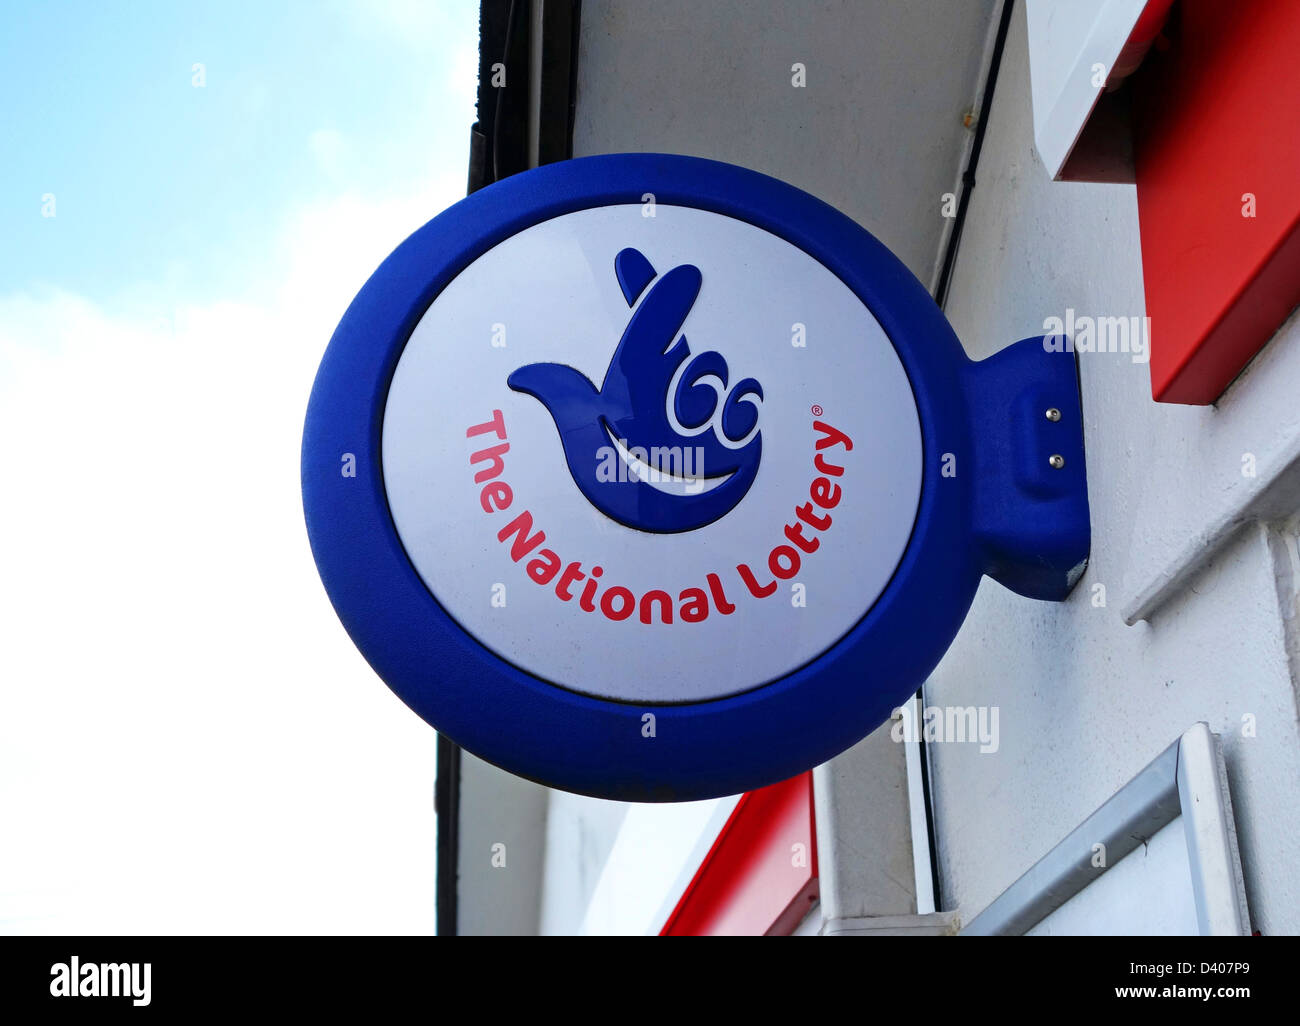 The National Lottery sign - Stock Image